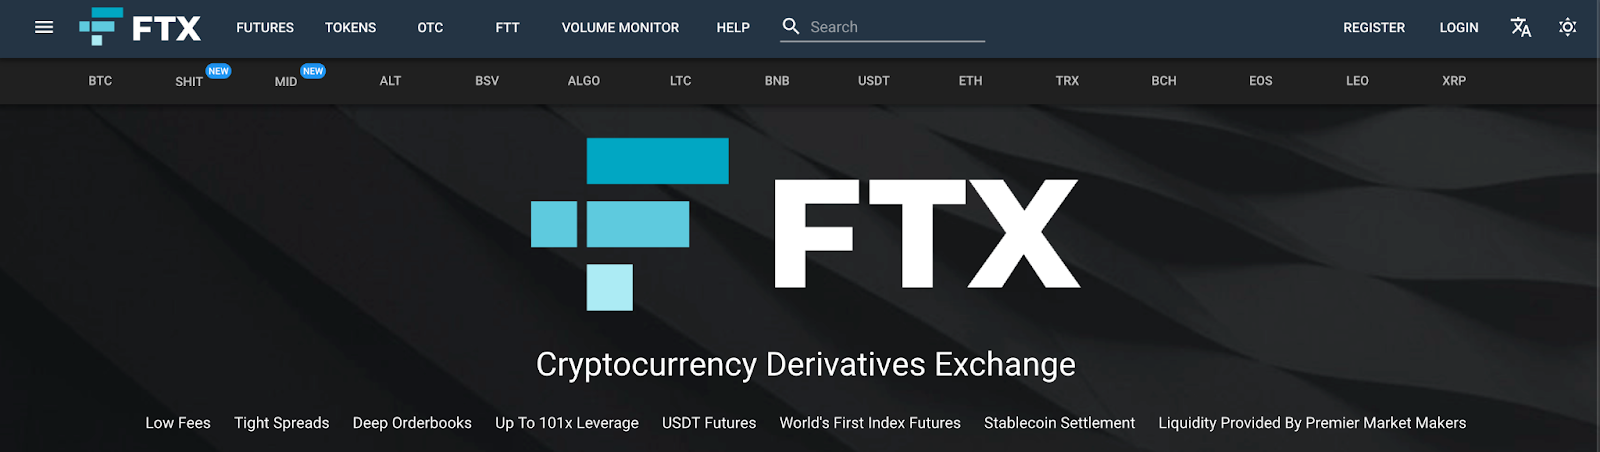 ftx funding rate